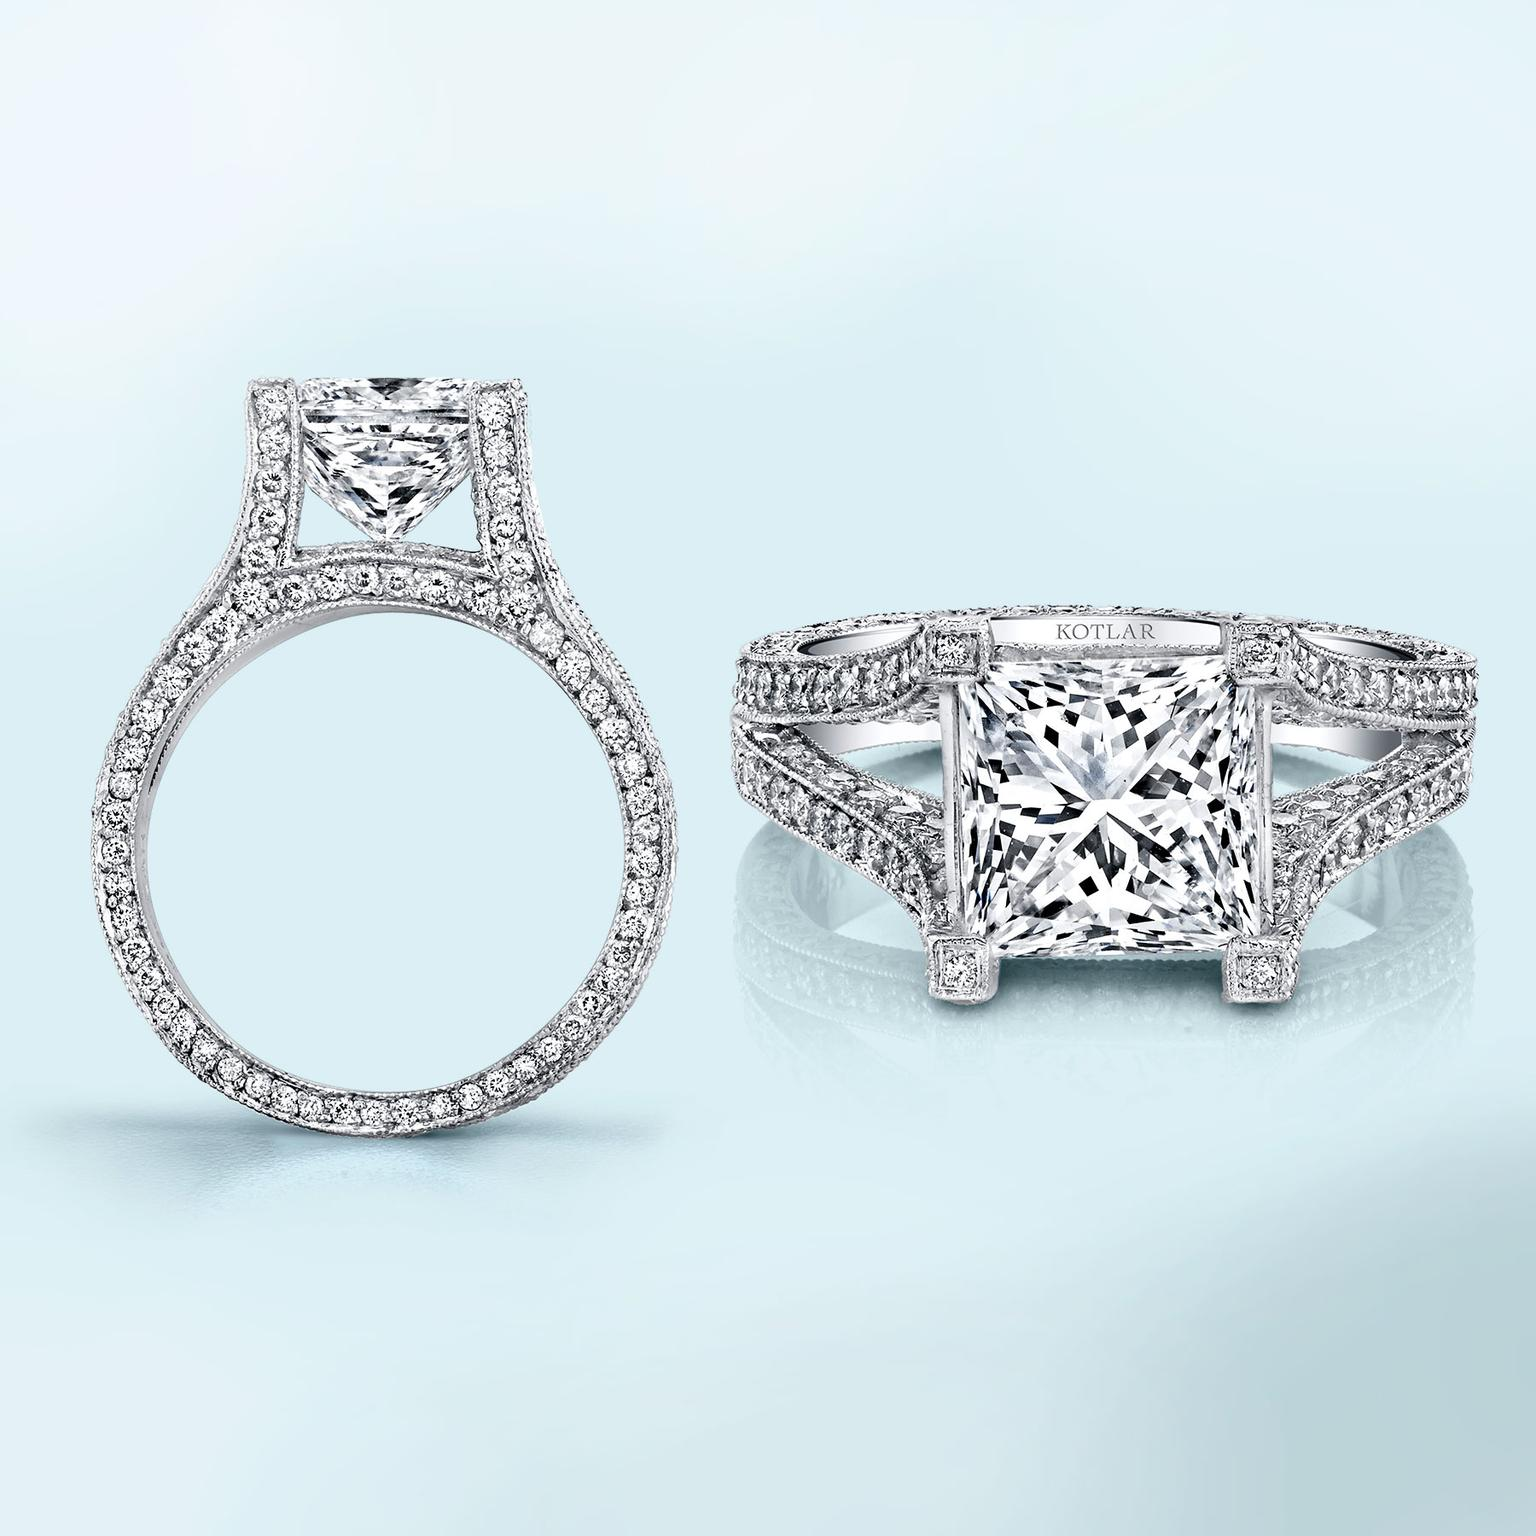 5a6726a8053b3 The romantic appeal of princess-cut engagement rings | The Jewellery ...